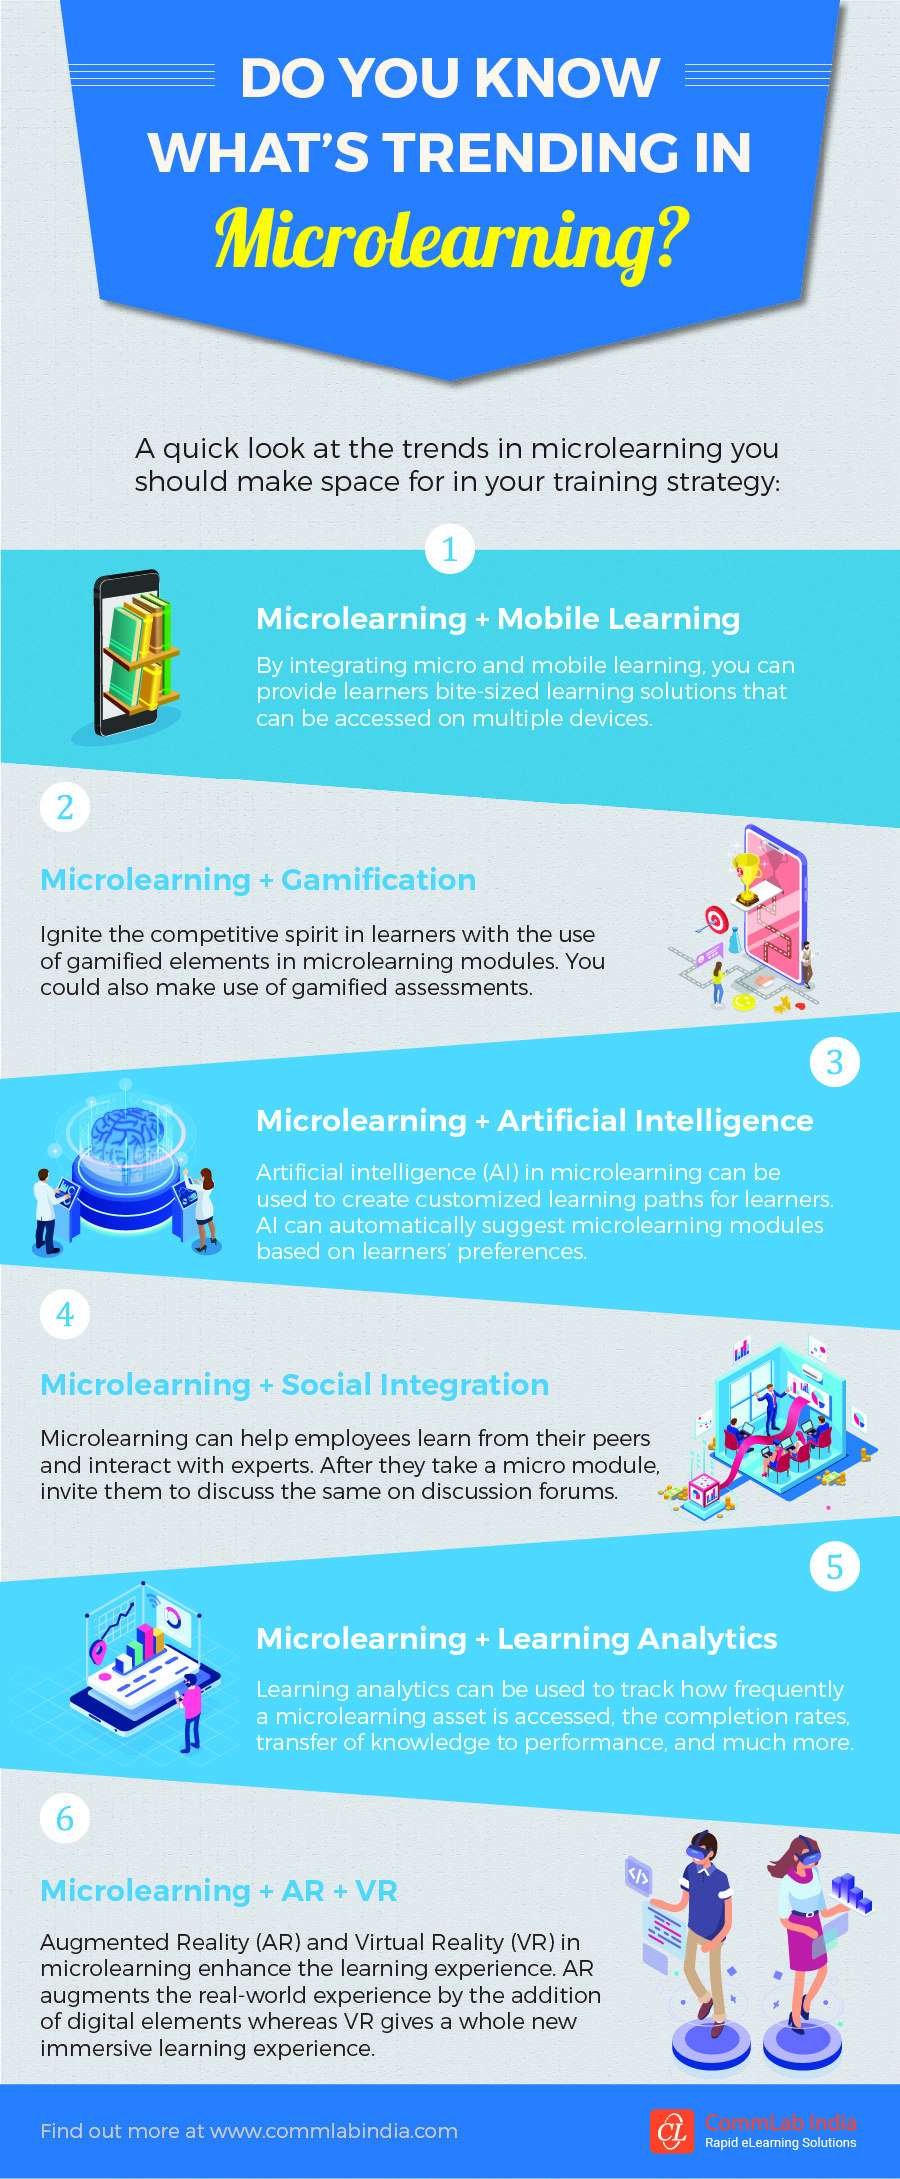 What's trending in microlearning?